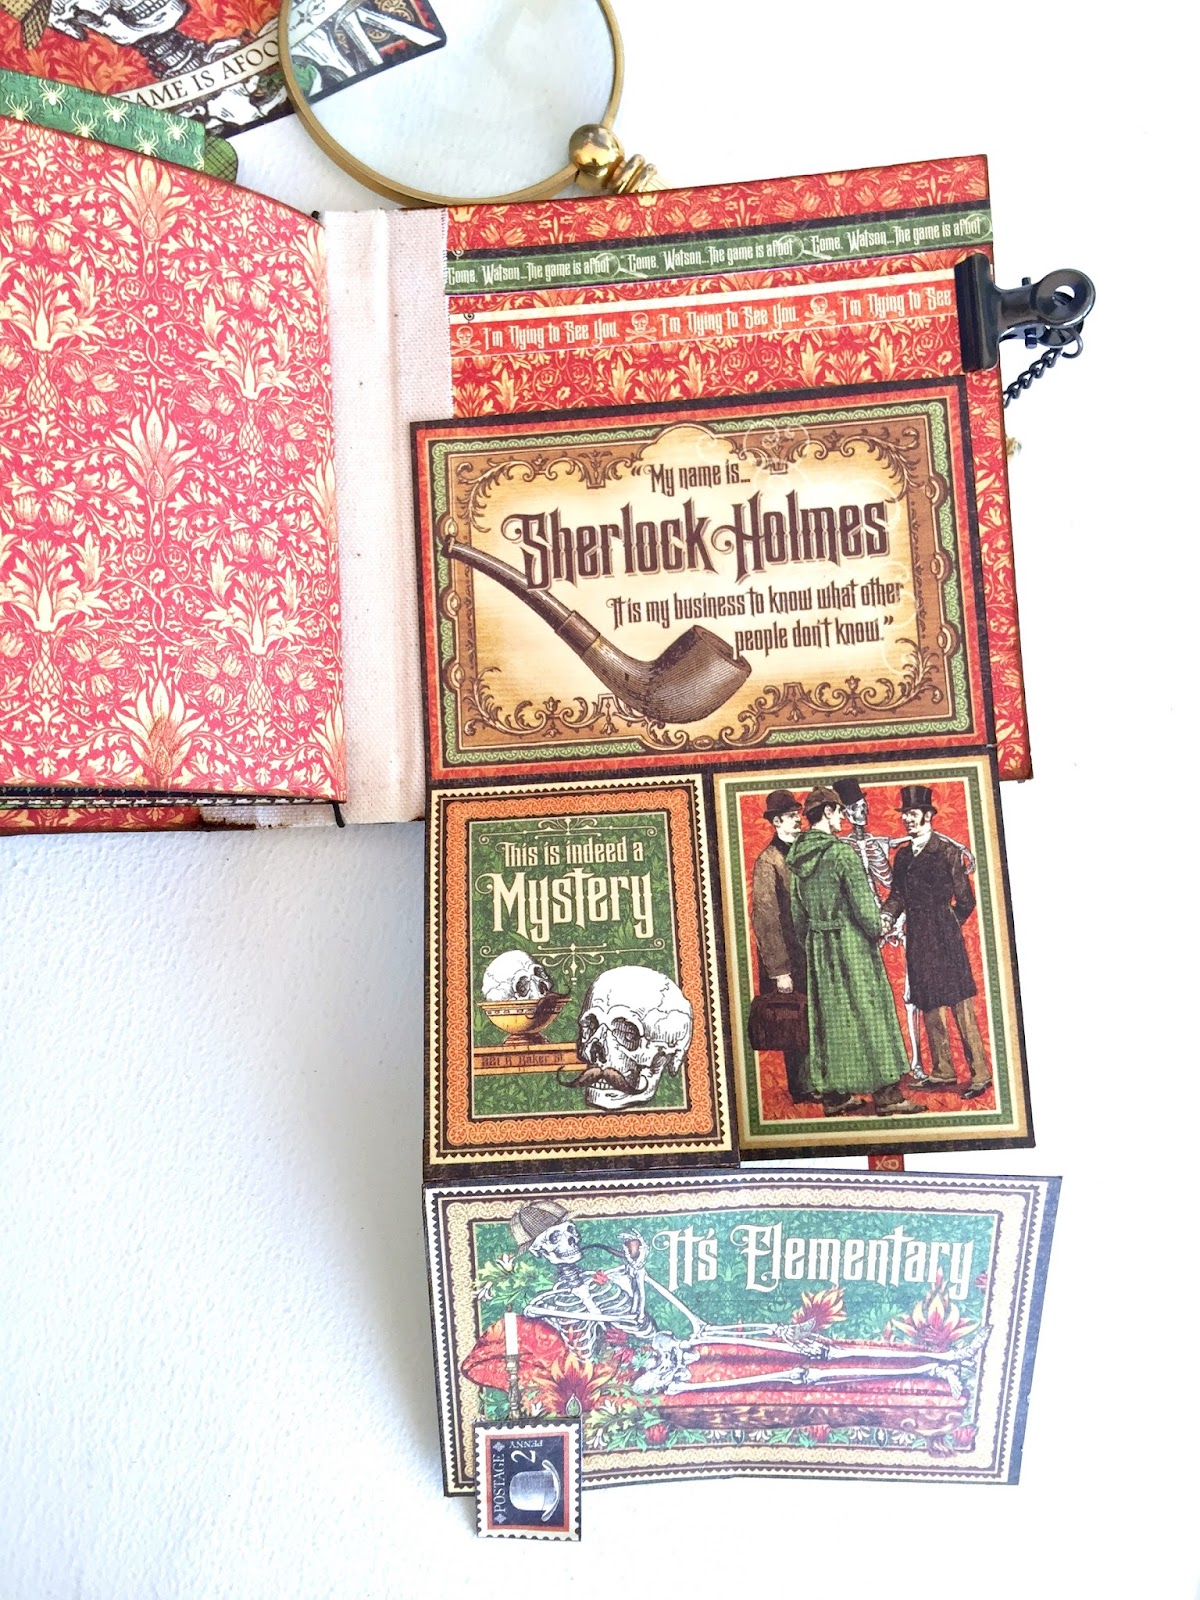 Stand and Mini Album Master Detective by Marina Blaukitchen Product by Graphic 45 photo 29.jpg